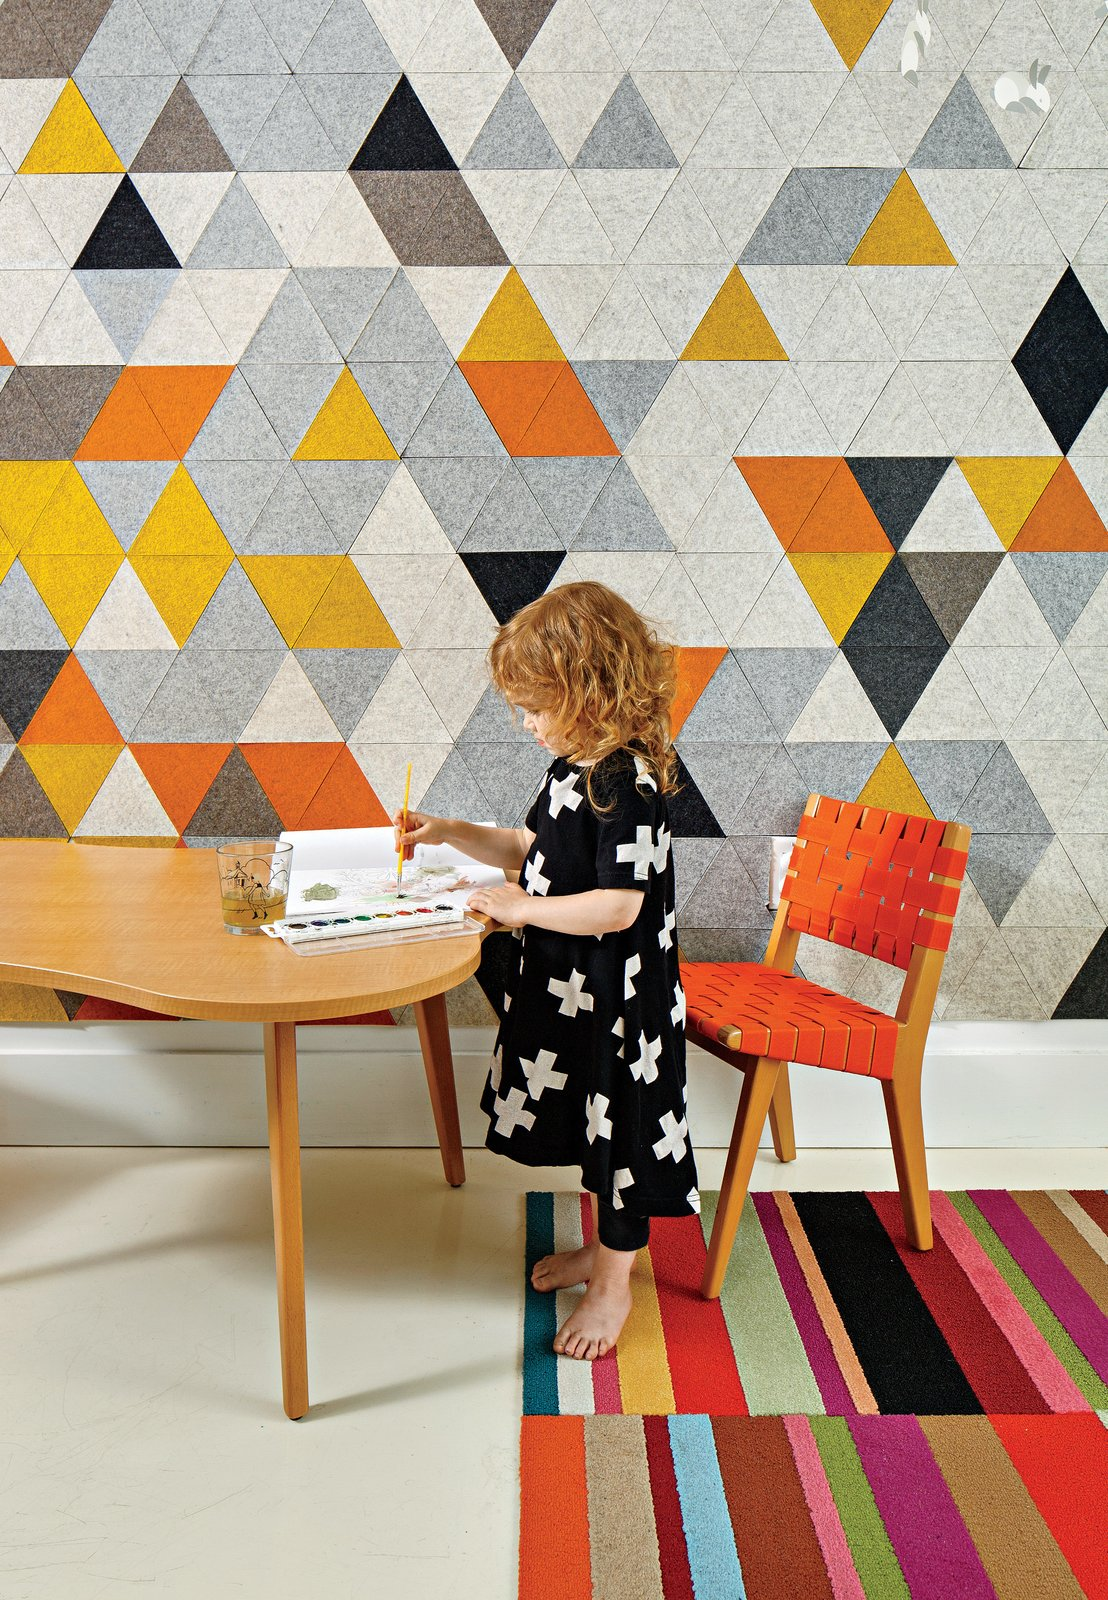 Chris Grimley and Kelly Smith transformed a cramped apartment into a family-friendly home. The room shared by Mae, three, and her little brother Roen, one, features a custom prototype mural by FilzFelt, their mother's textile design company. The carpet is by Flor, and the child-size chair and Amoeba table are both by Jens Risom for Knoll. Tagged: Kids Room, Playroom, Chair, Desk, and Rug Floor.  Photo 1 of 8 in Boston Renovation Accents Minimalist White with Rich Felt Murals